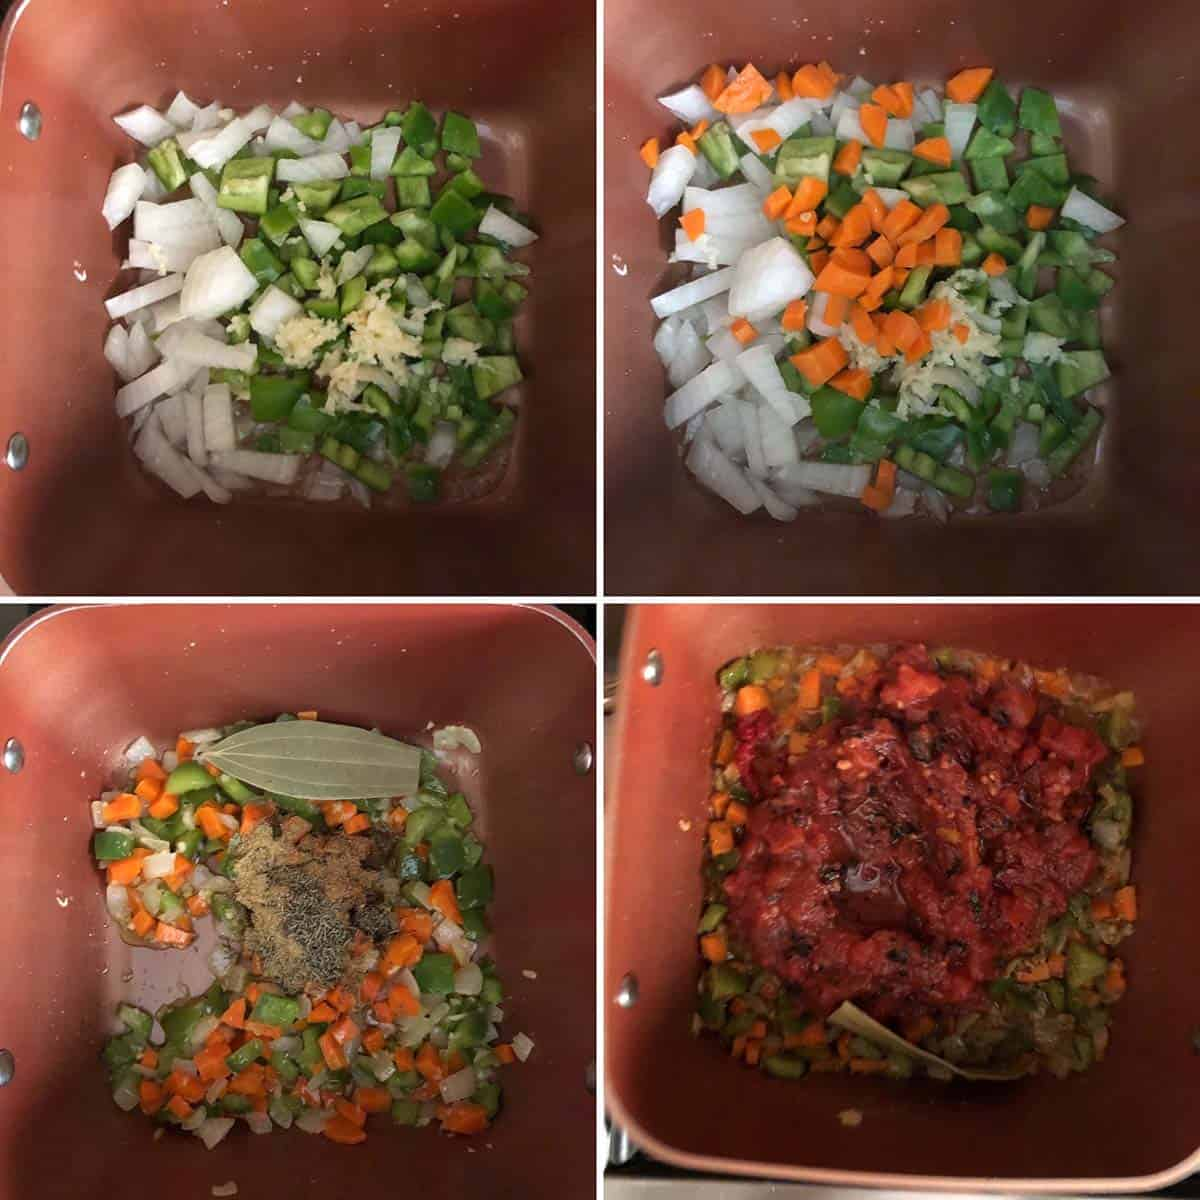 Step by step photos showing the sauteing of veggies and spices